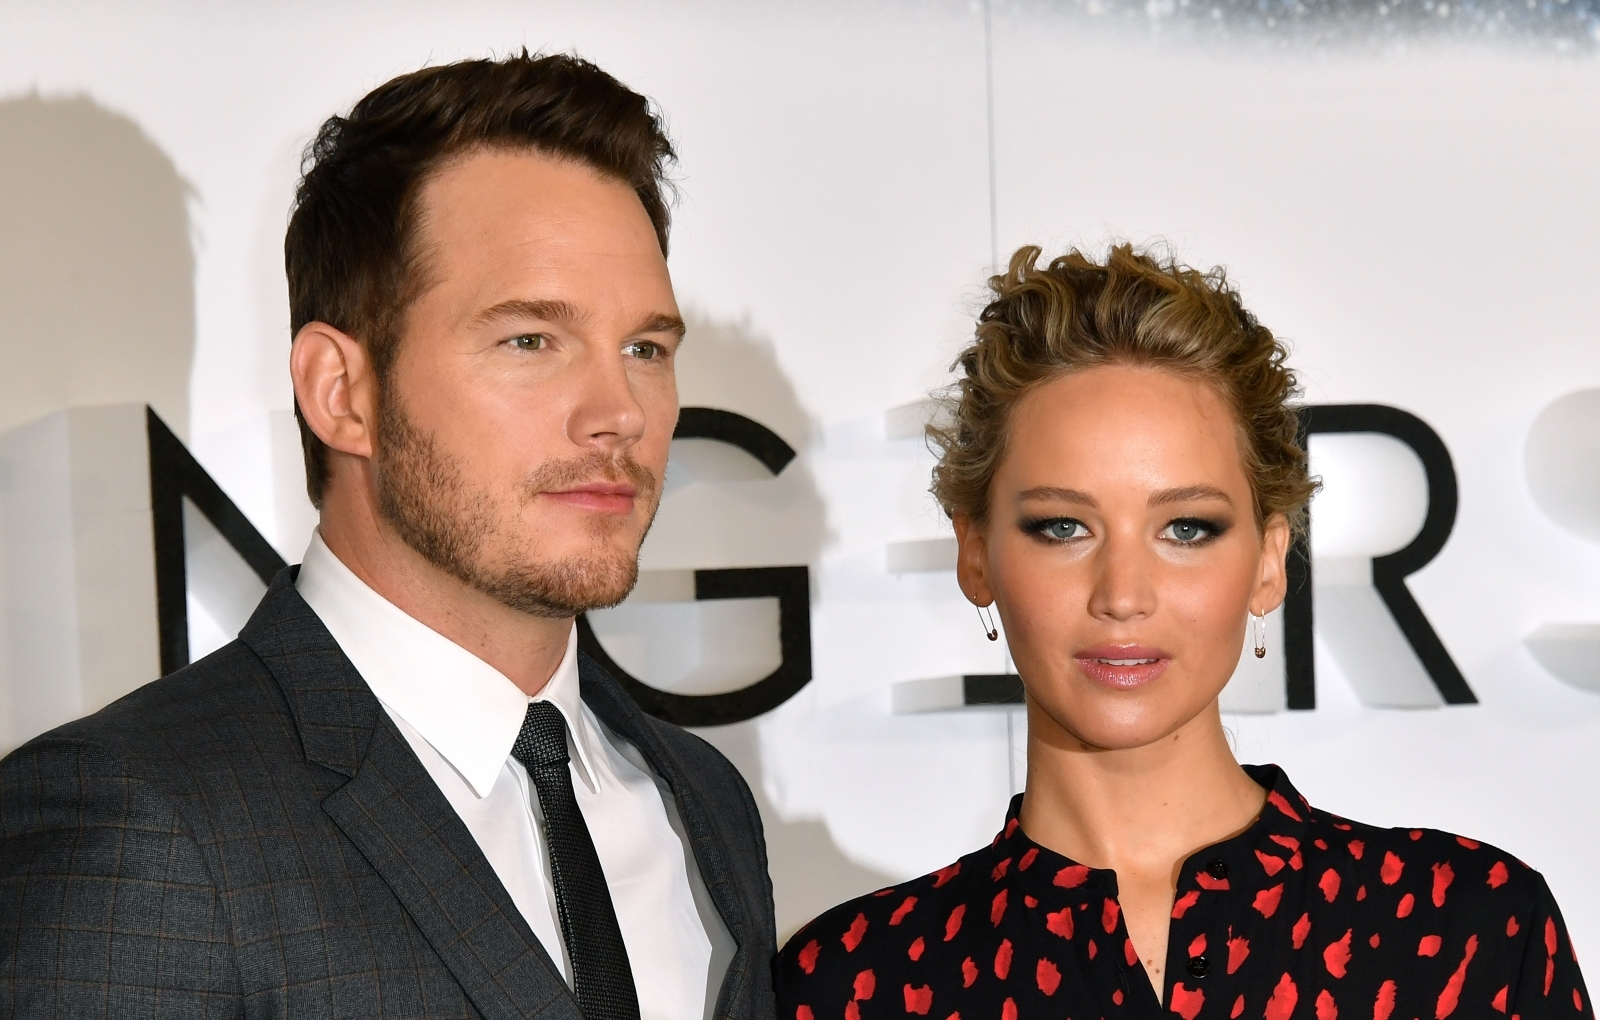 Chris Pratt and Anna Faris split up after eight years together